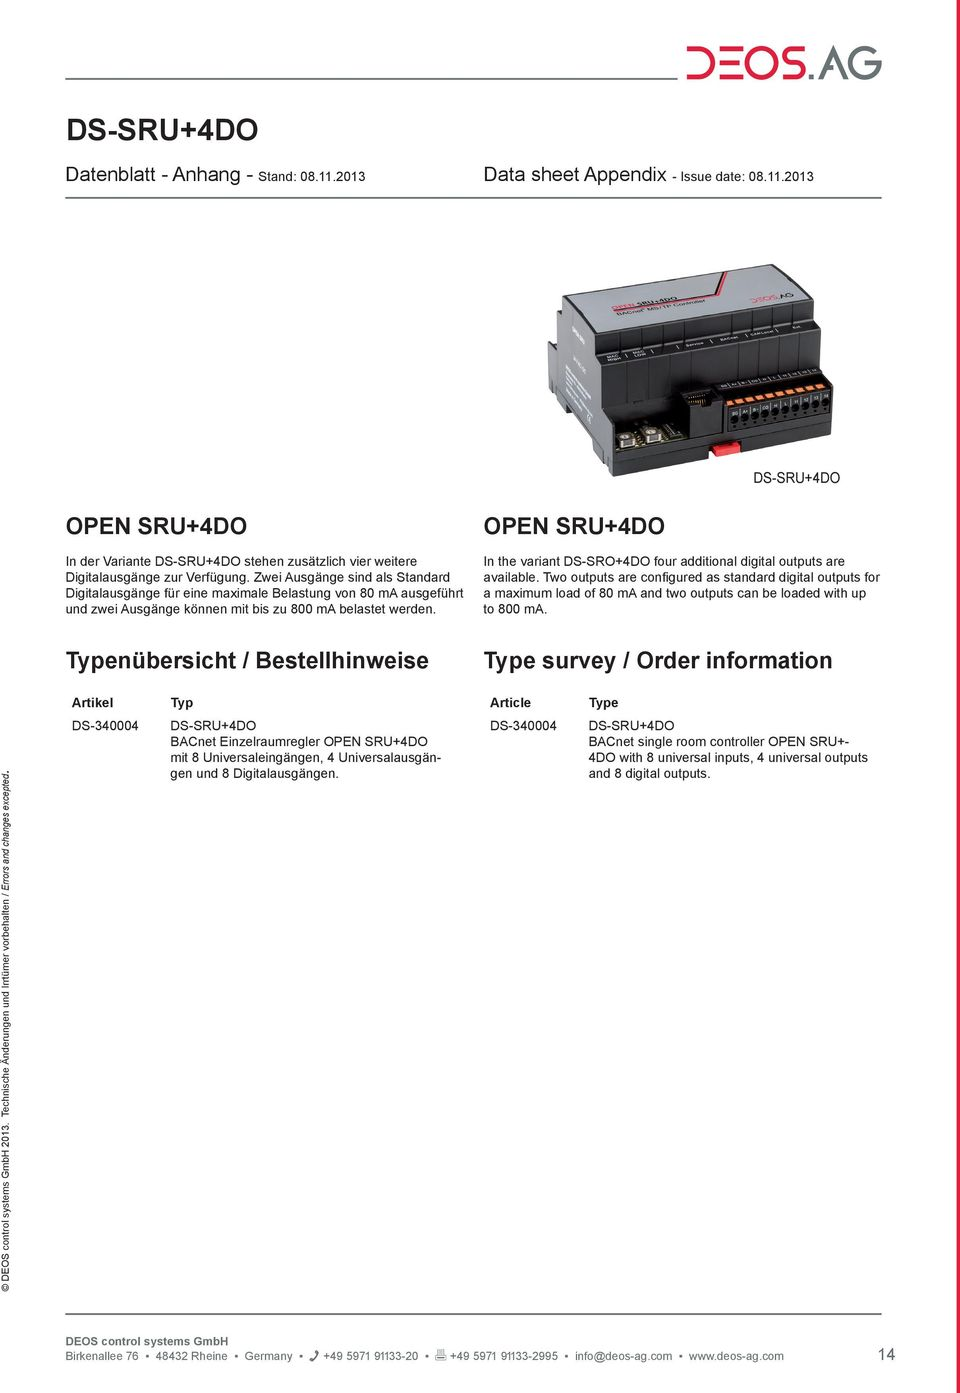 OPEN +4DO In the variant DS-SRO+4DO four additional digital outputs are available.